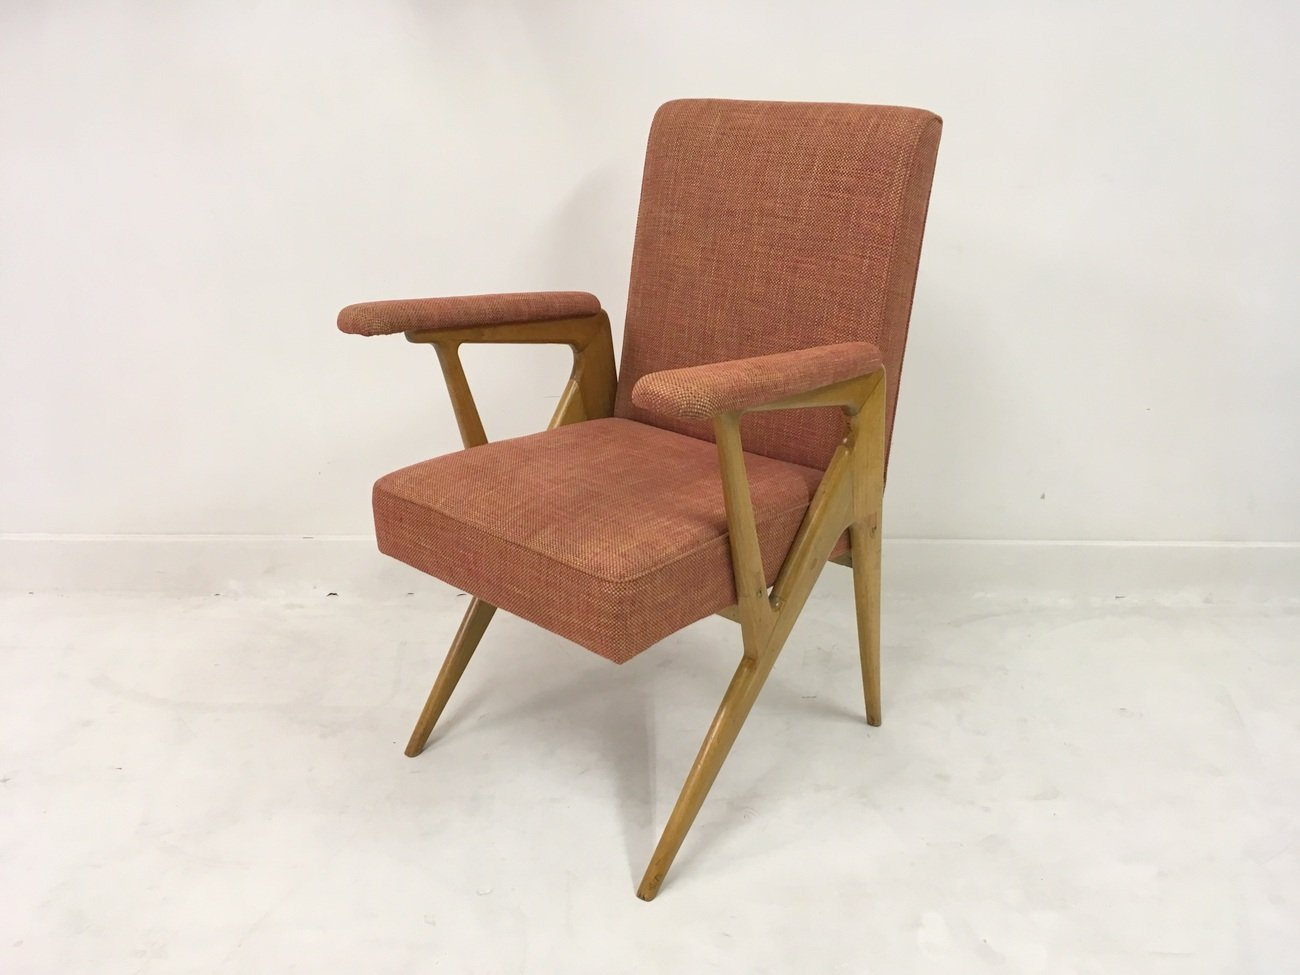 Italian Armchair, 1950s for sale at Pamono